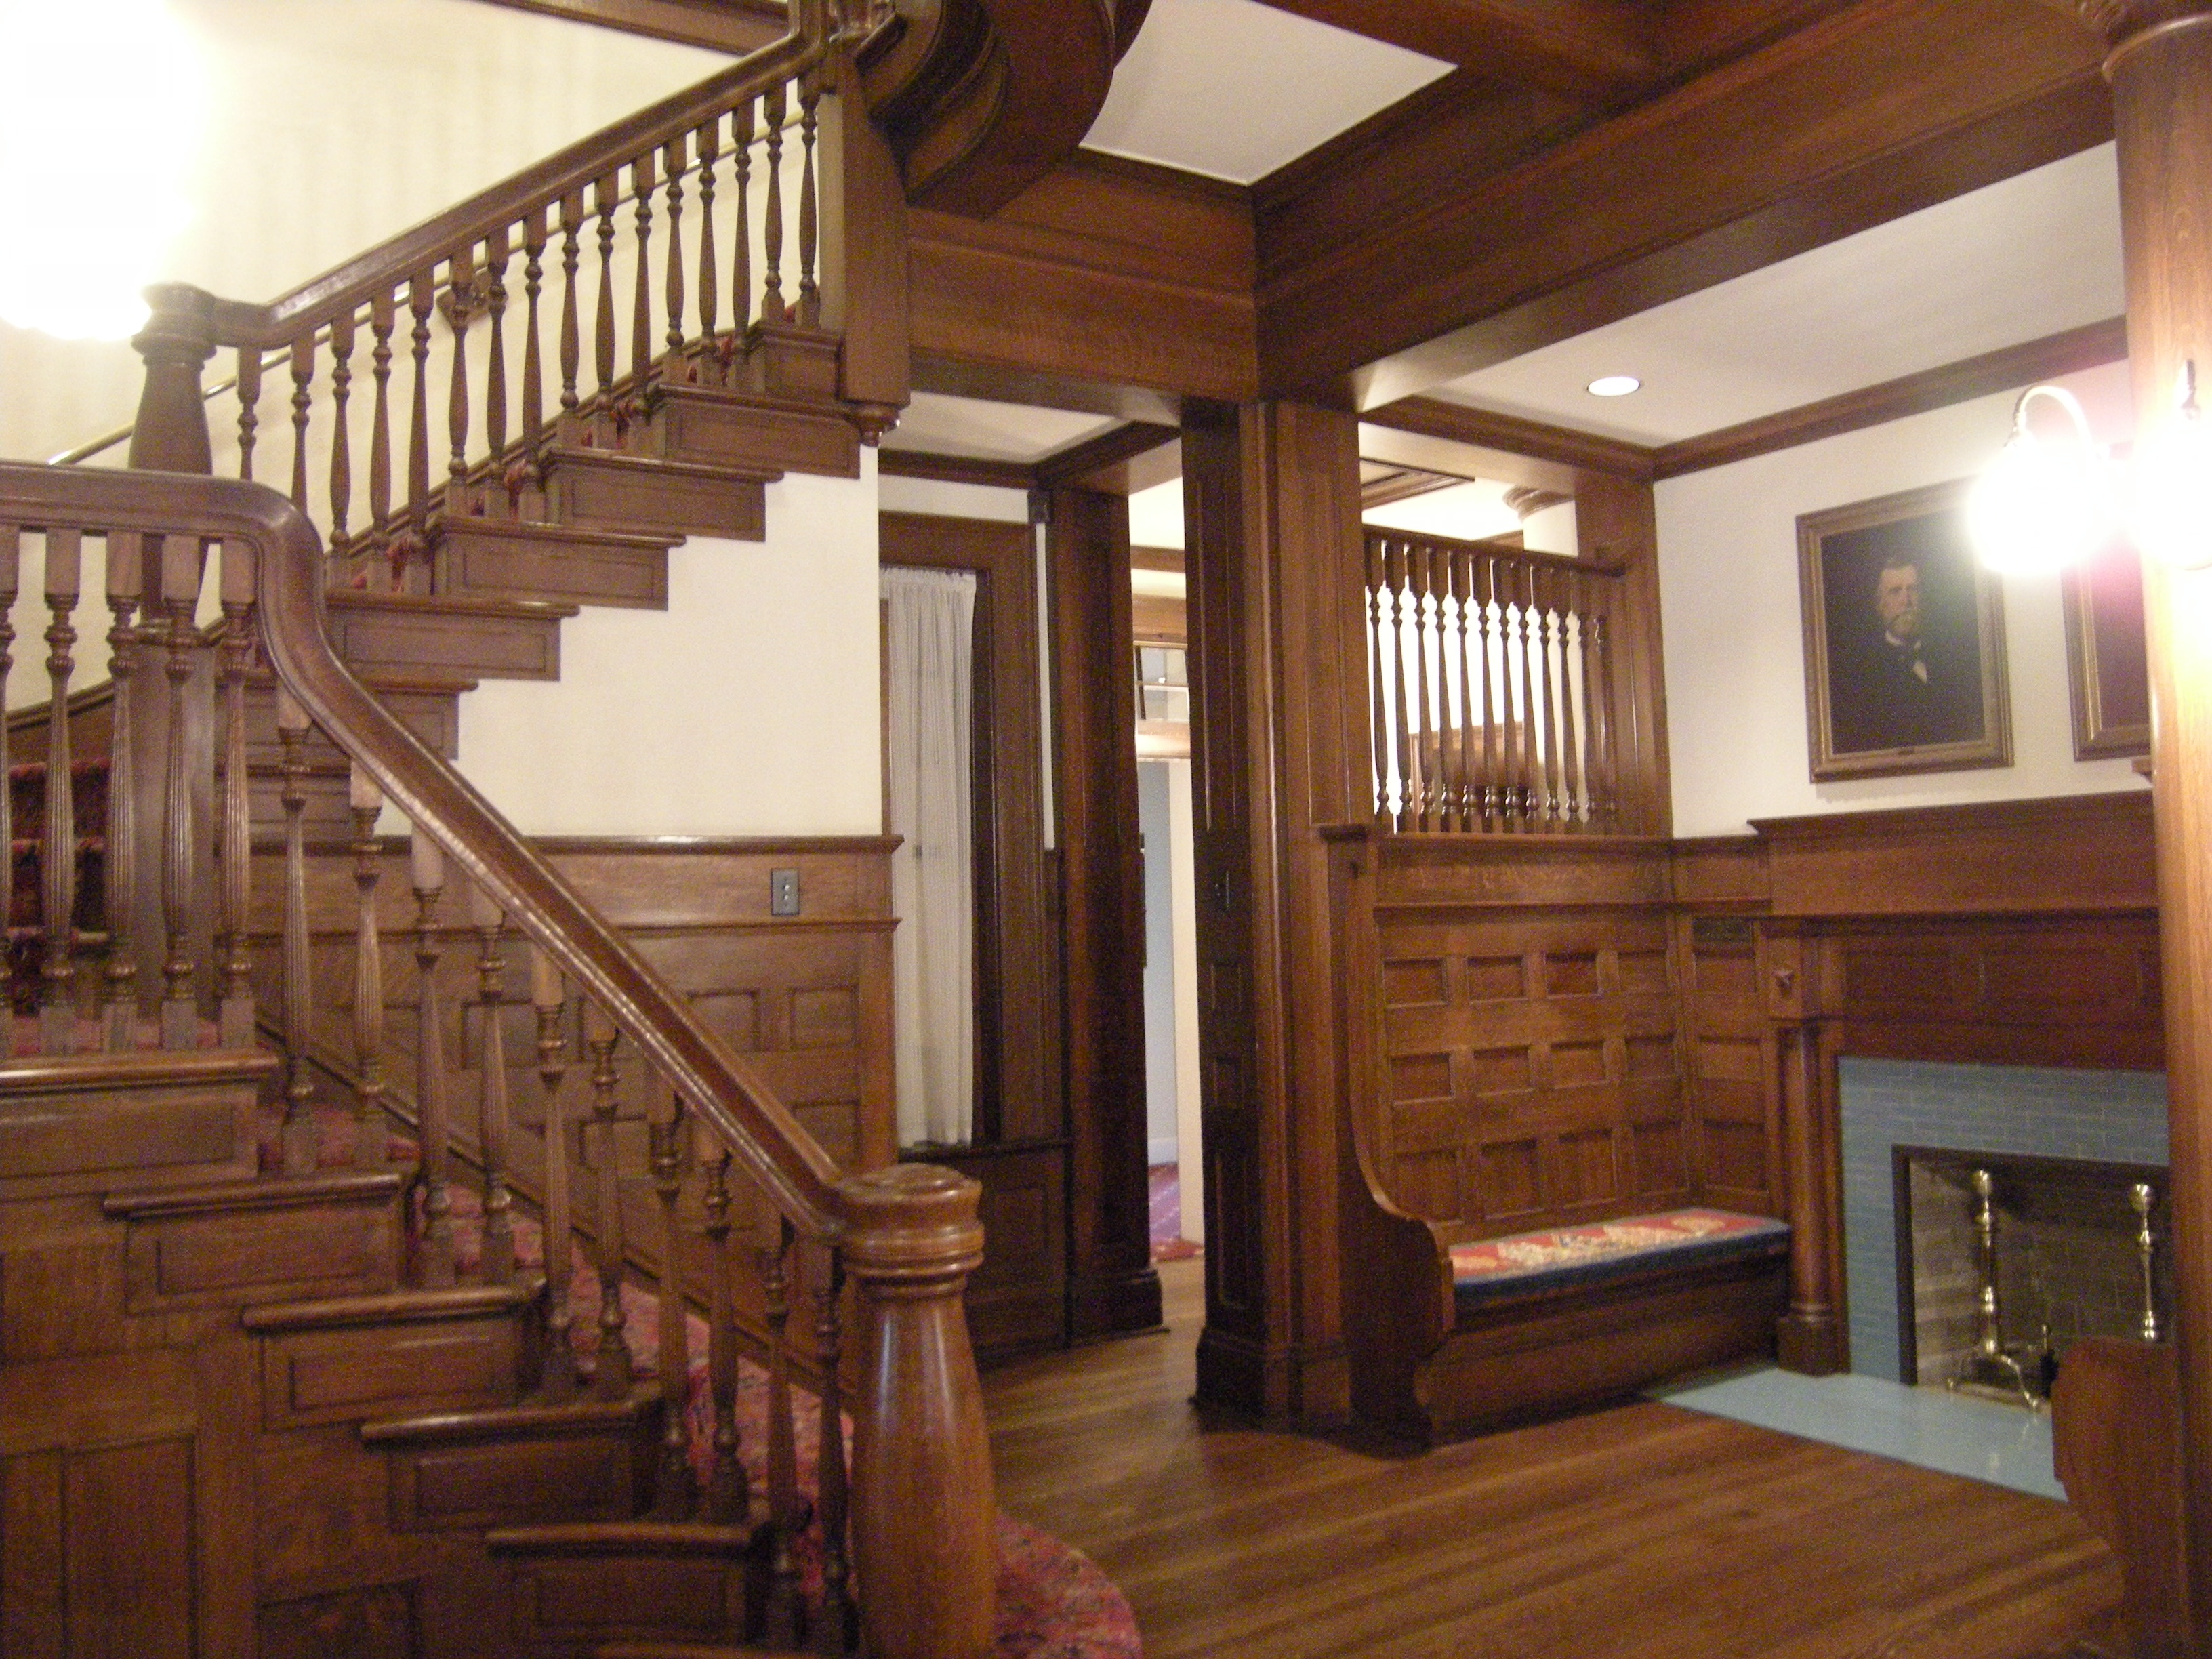 File:Dallas   A.H. Belo House Interior 01